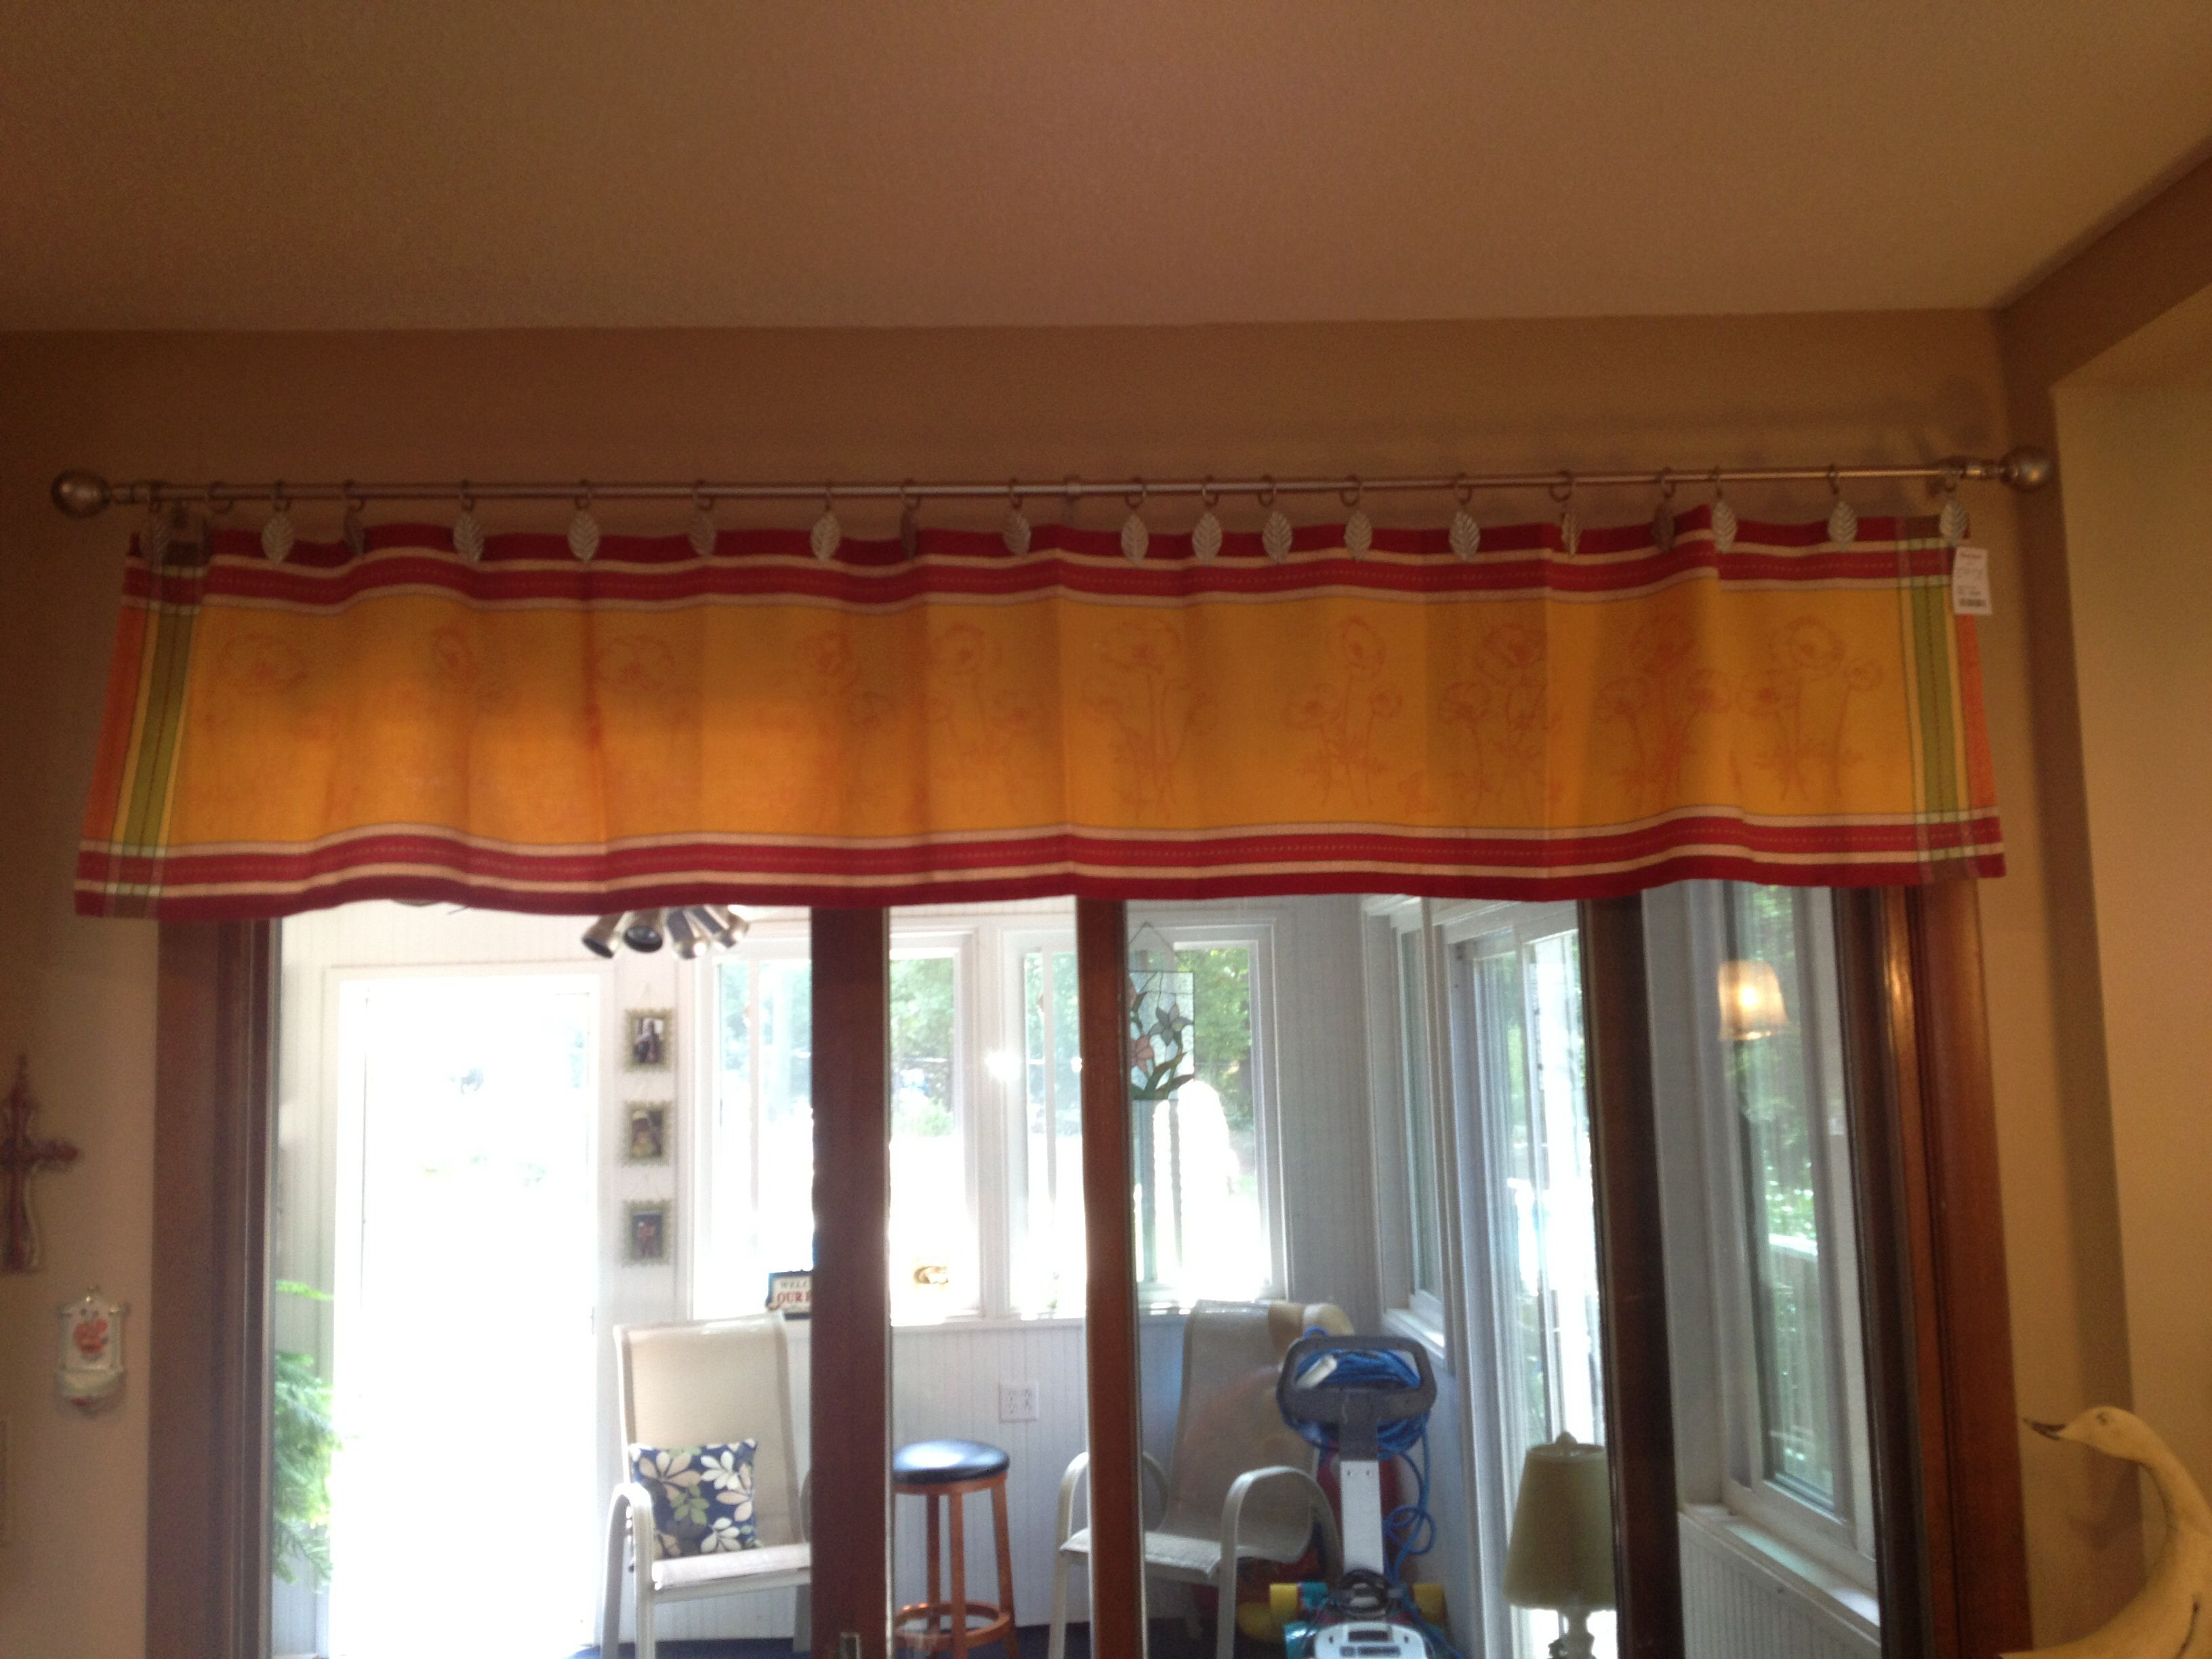 No sew valance made from table runner. Using Curtain rings with ...